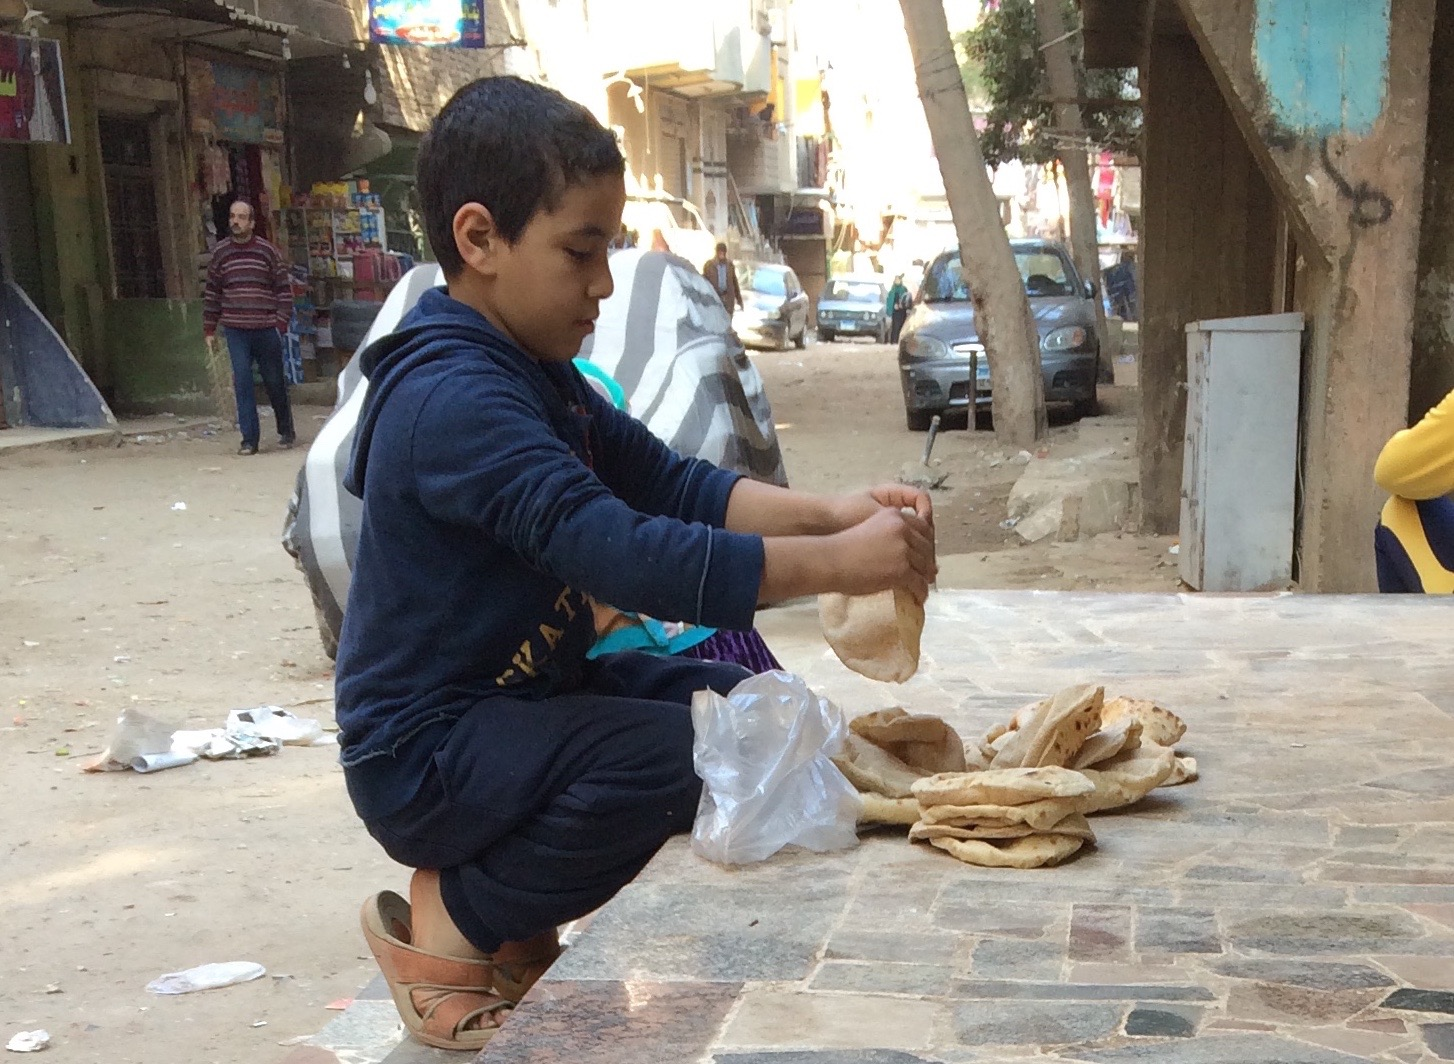 Stacking bread. Photo by Mariam Taher.